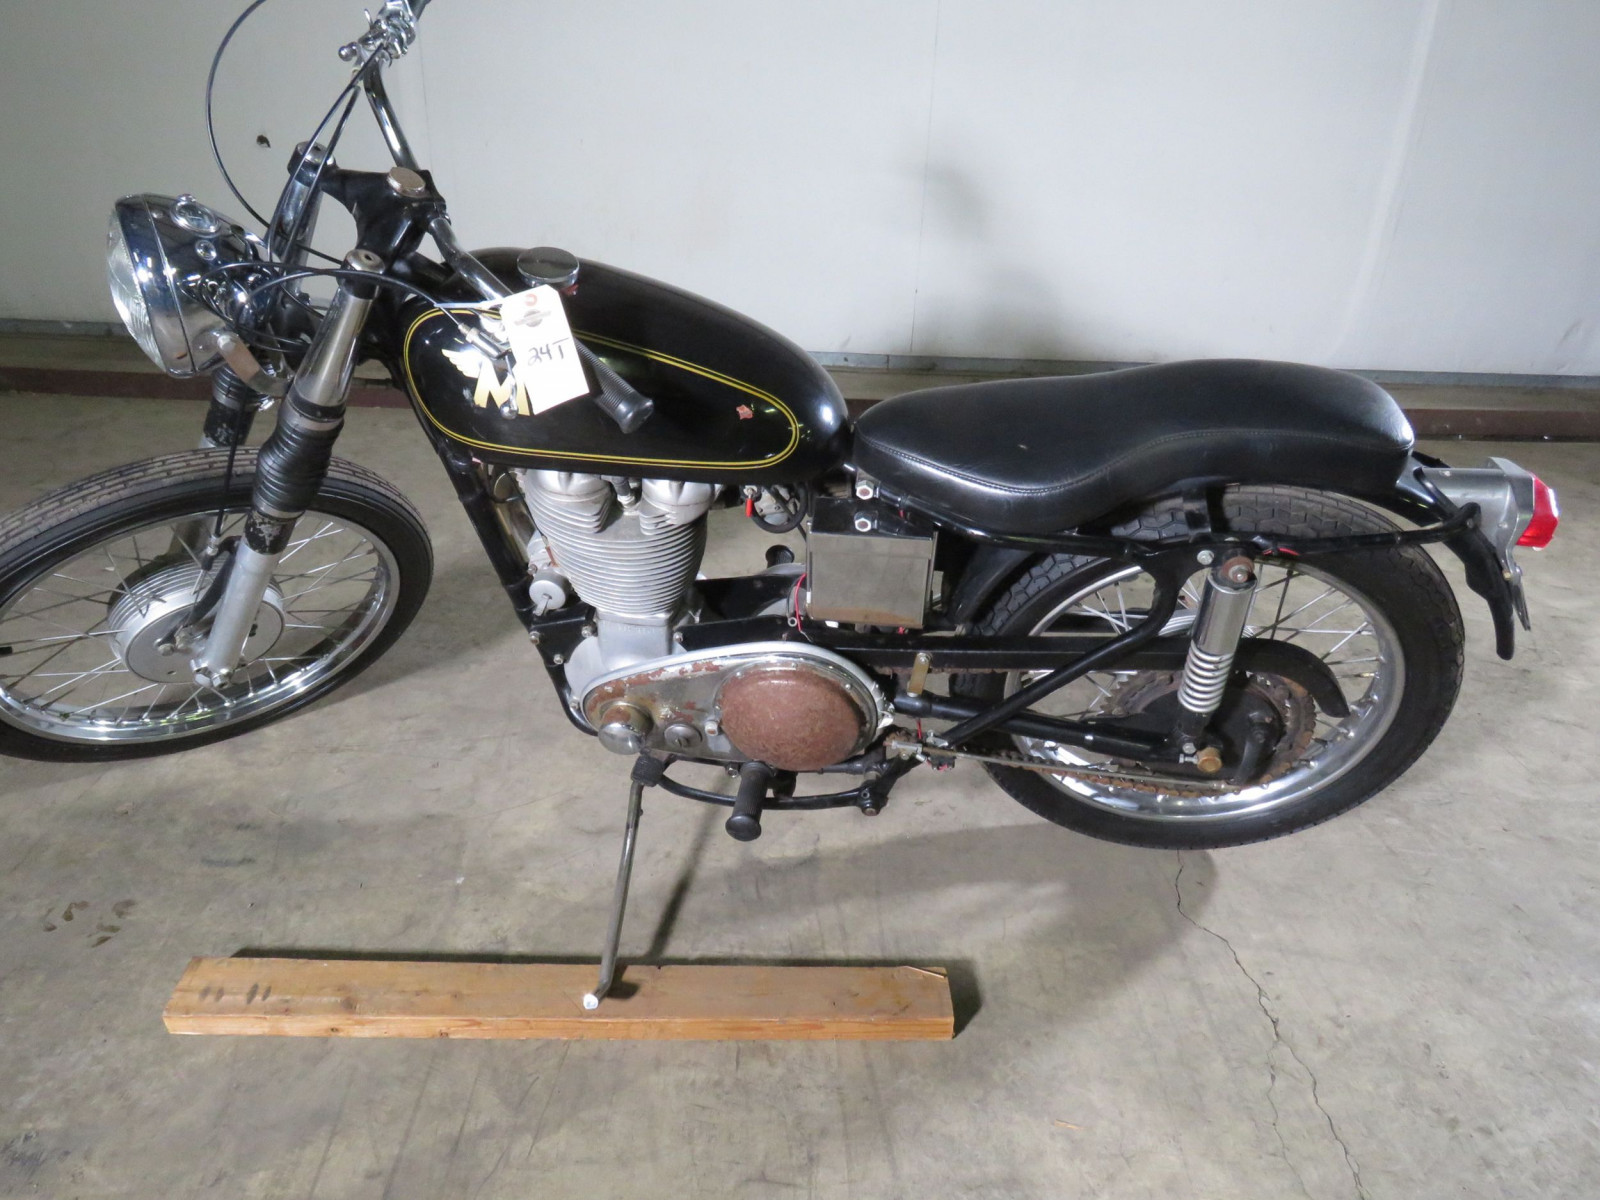 1956 Matchless G80 Motorcycle - Image 2